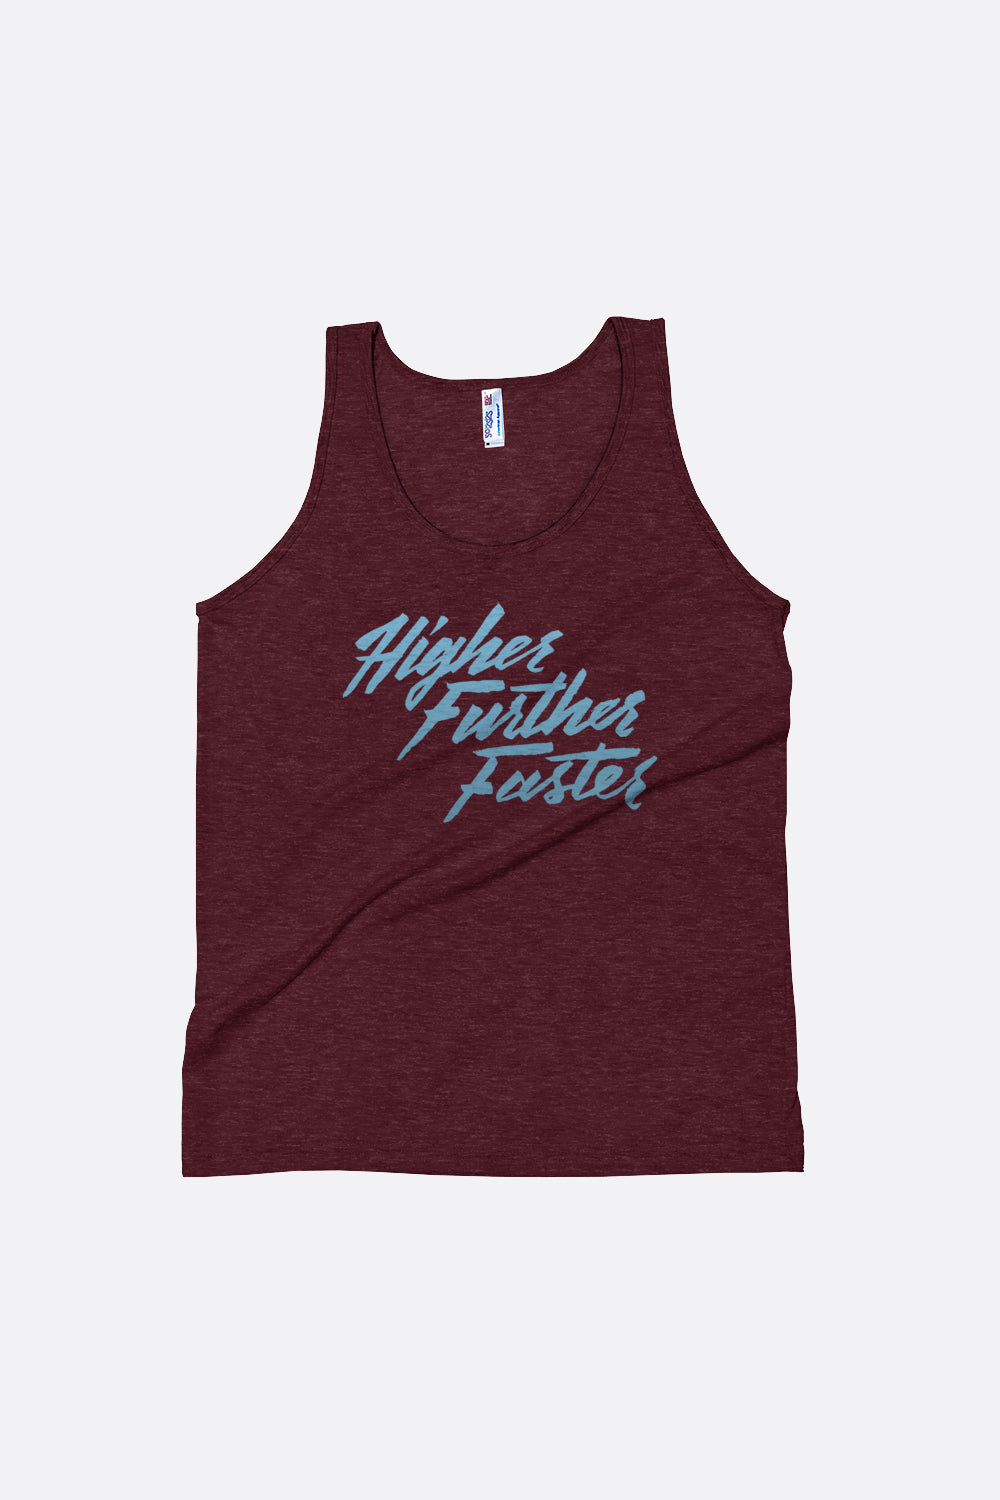 Higher Further Faster Unisex Tank Top